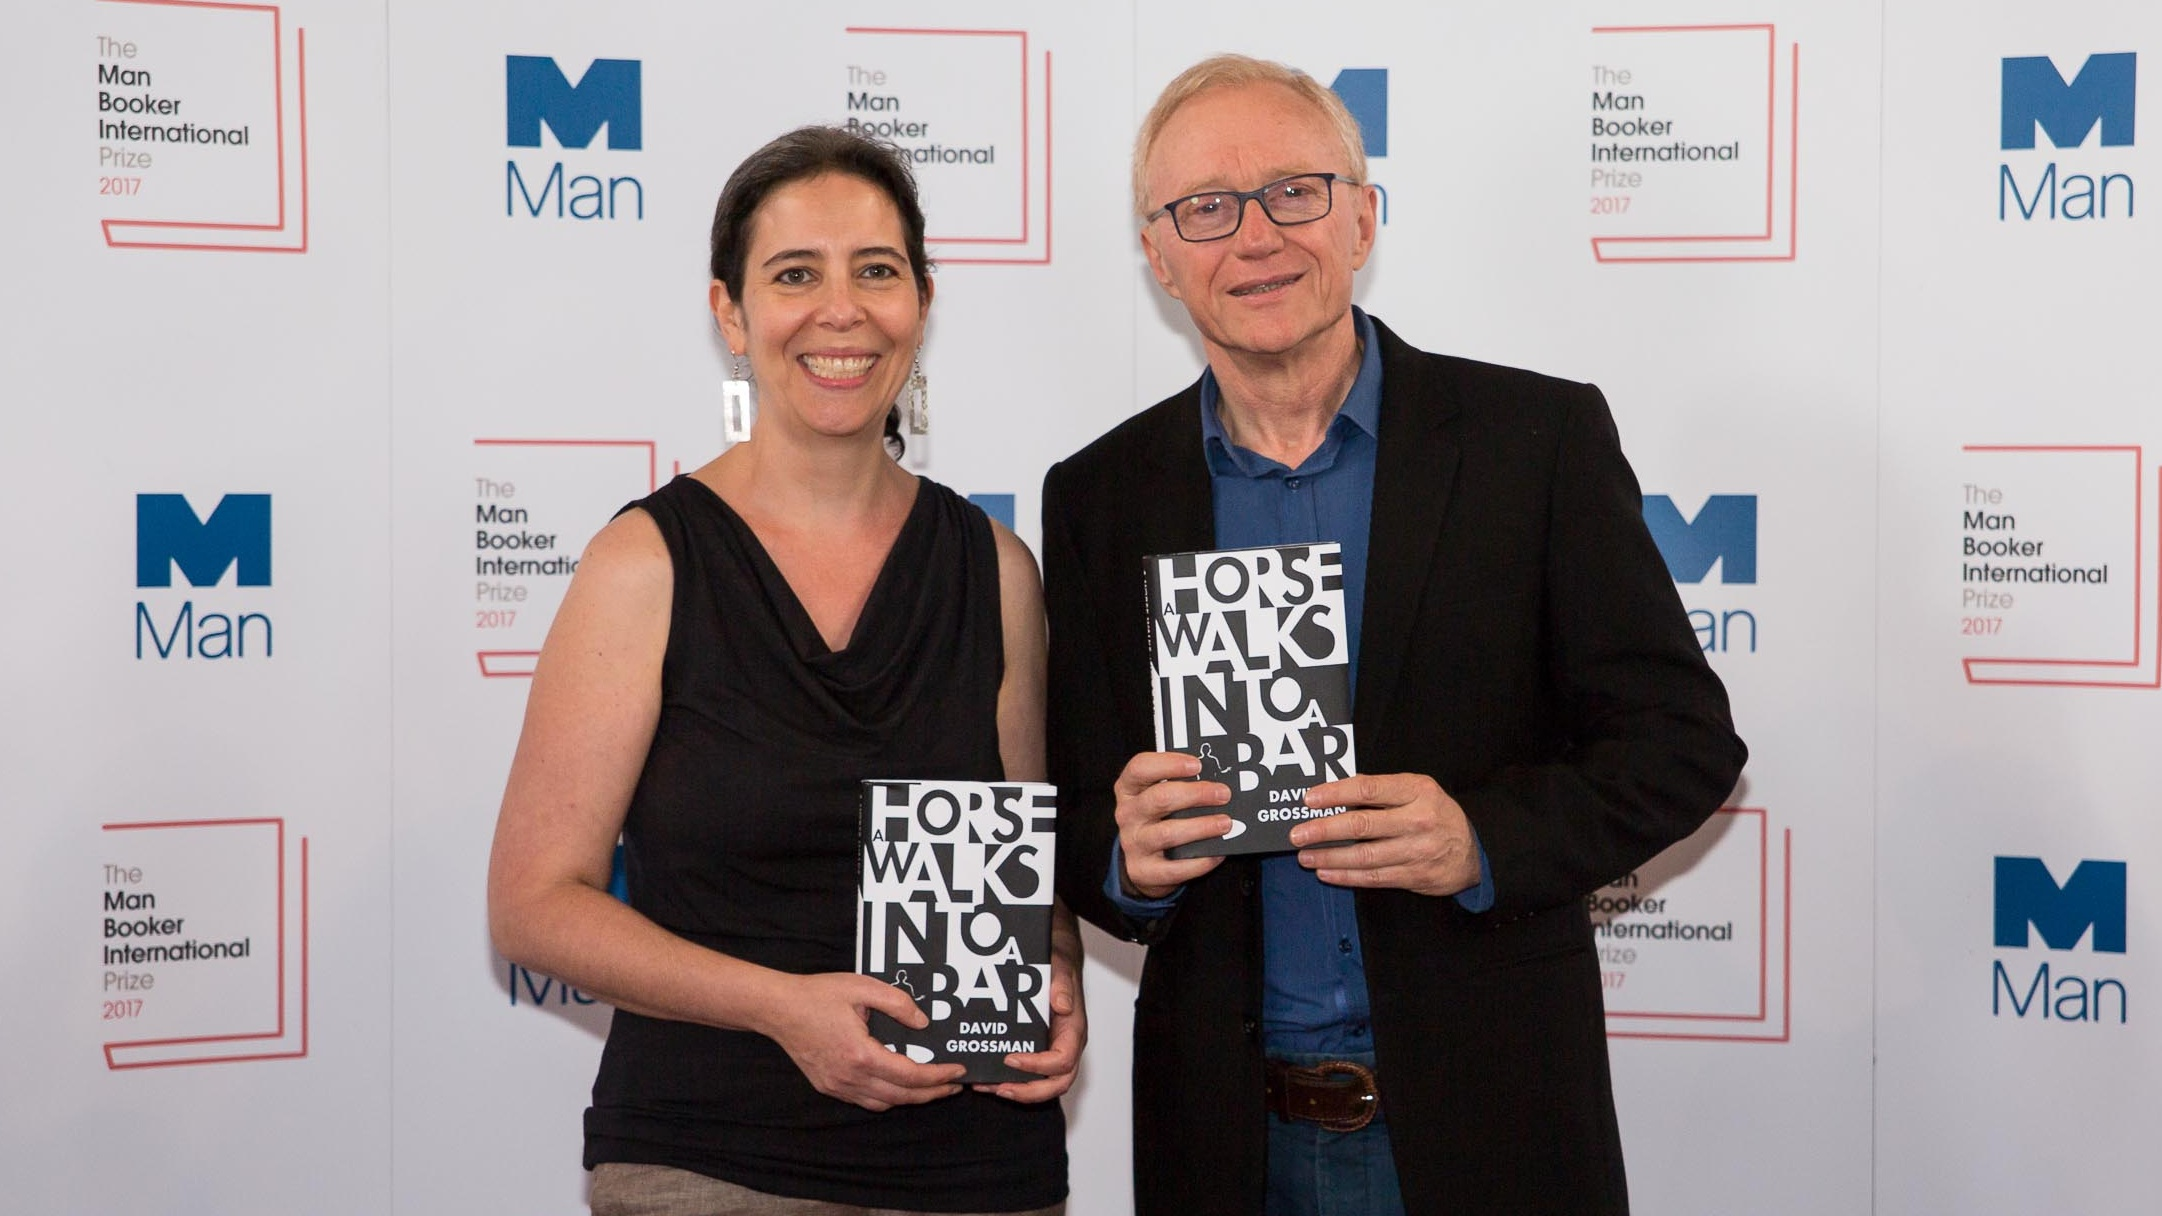 Israeli Author David Grossman Wins Man Booker International Prize